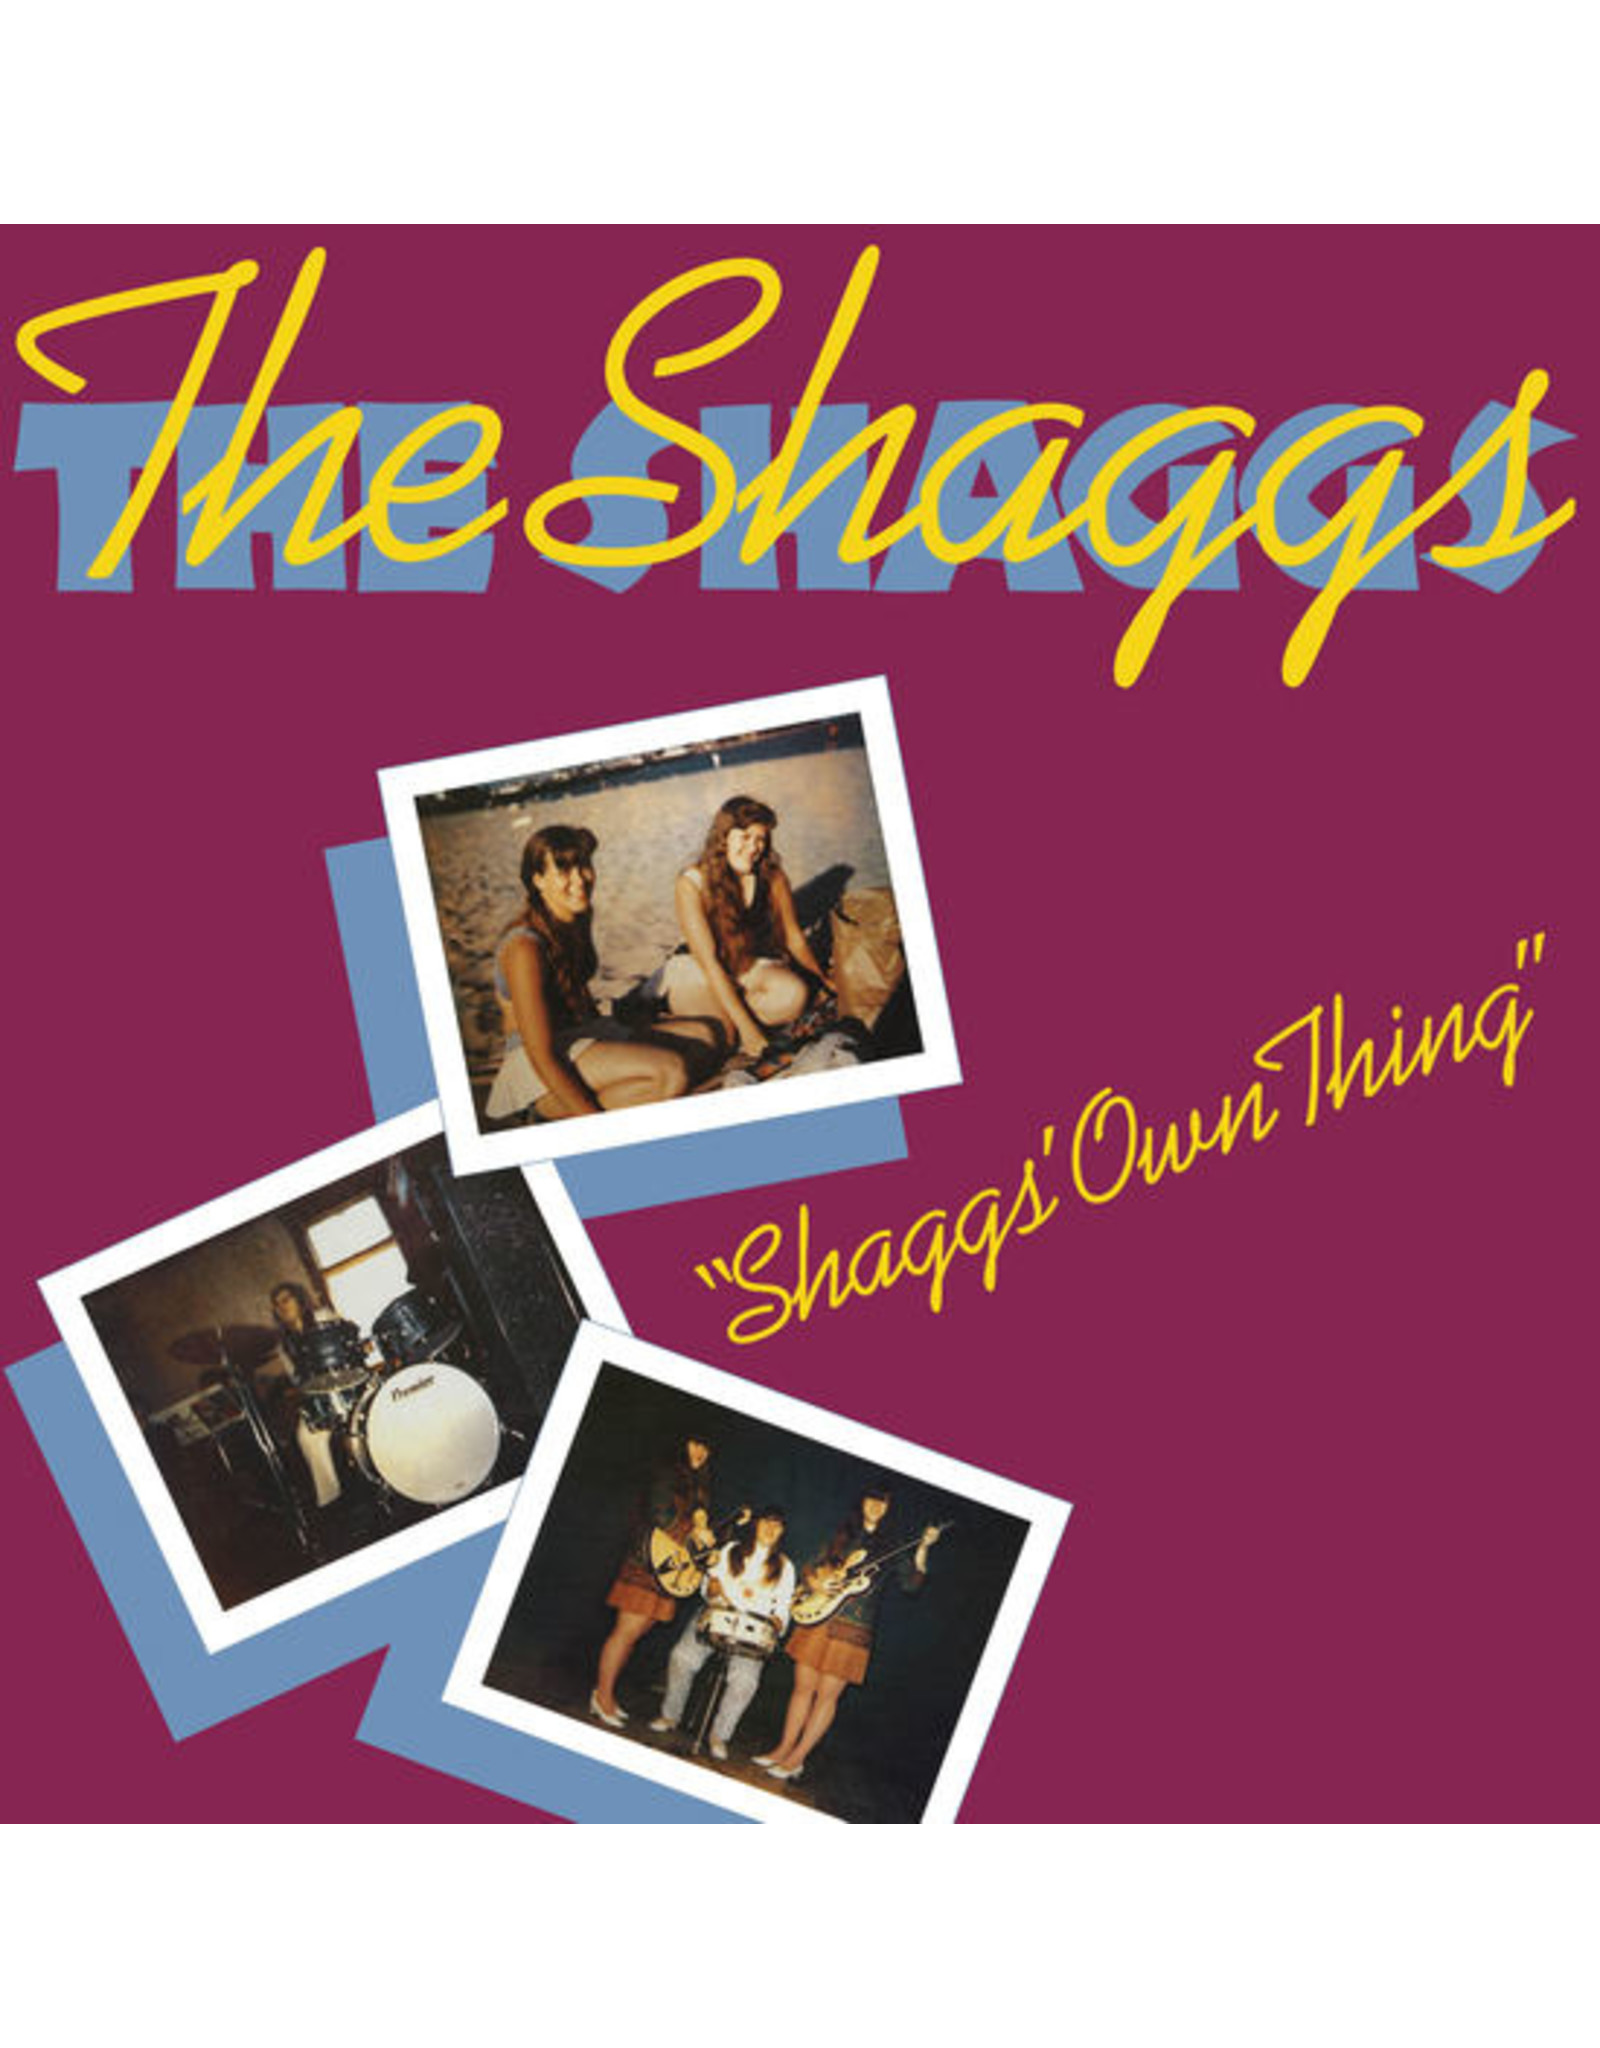 New Vinyl The Shaggs - Shaggs' Own Thing (Colored) LP